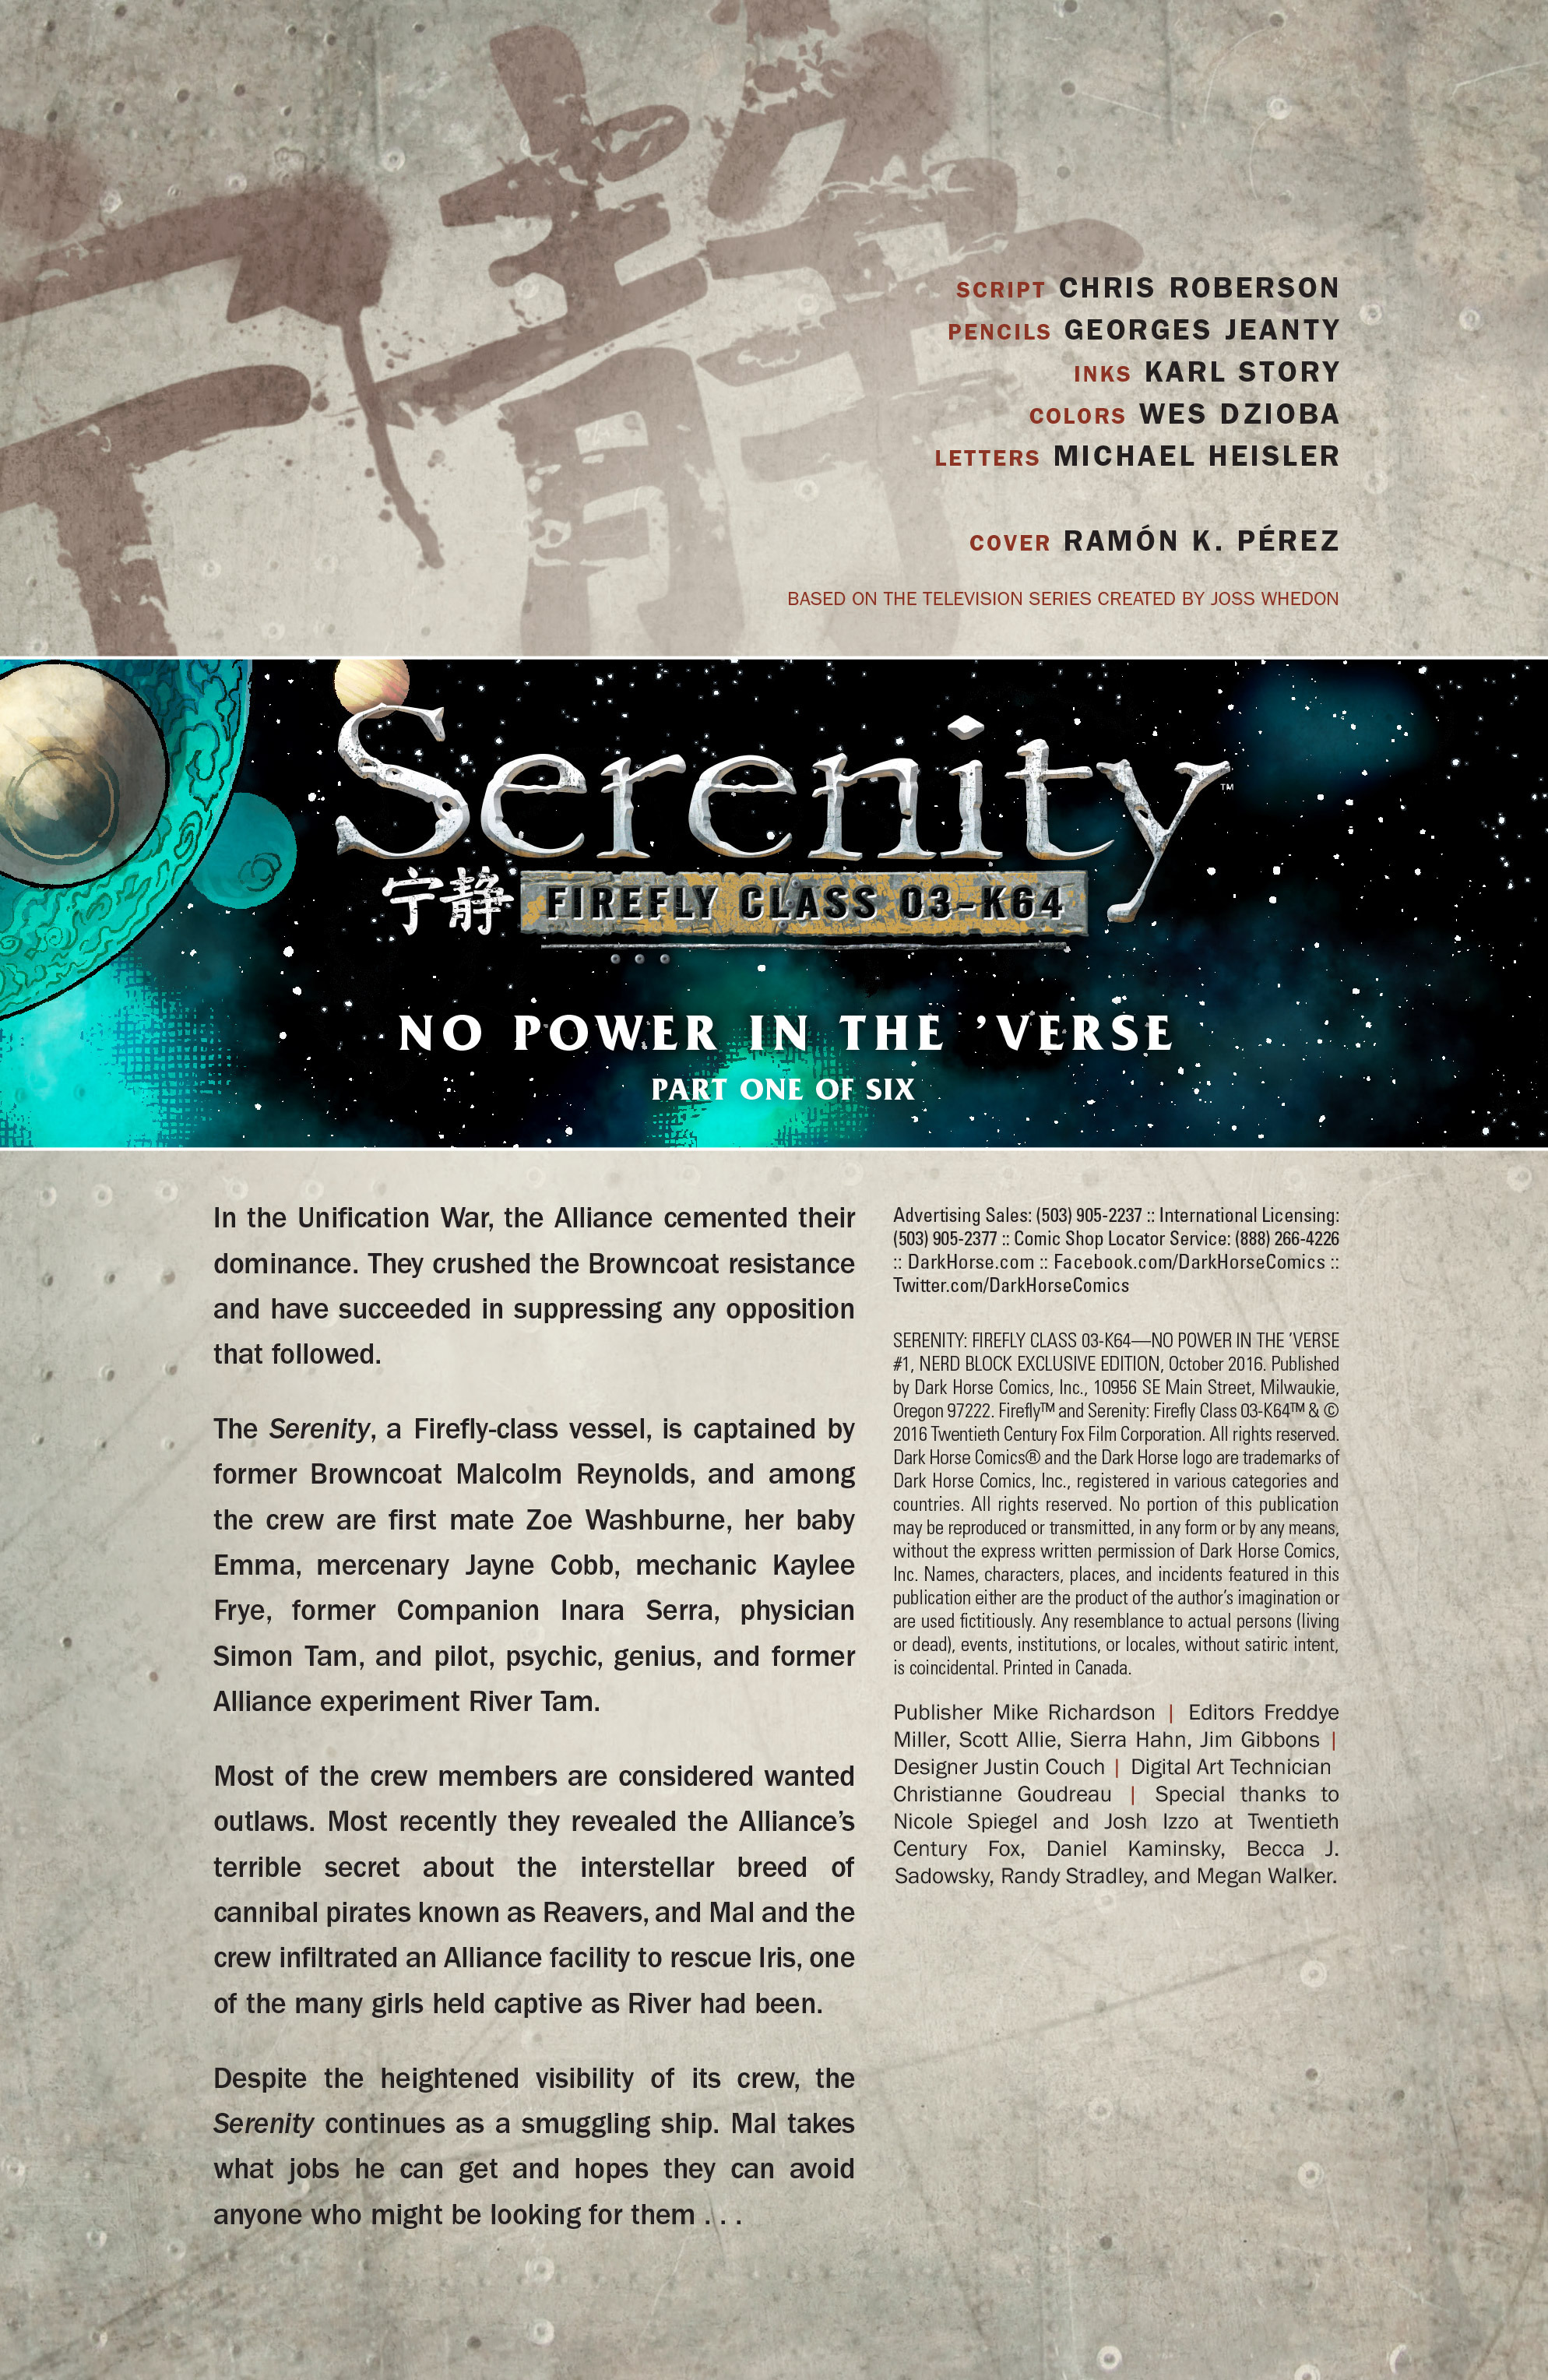 Read online Serenity: Firefly Class 03-K64 – No Power in the 'Verse comic -  Issue #1 - 8